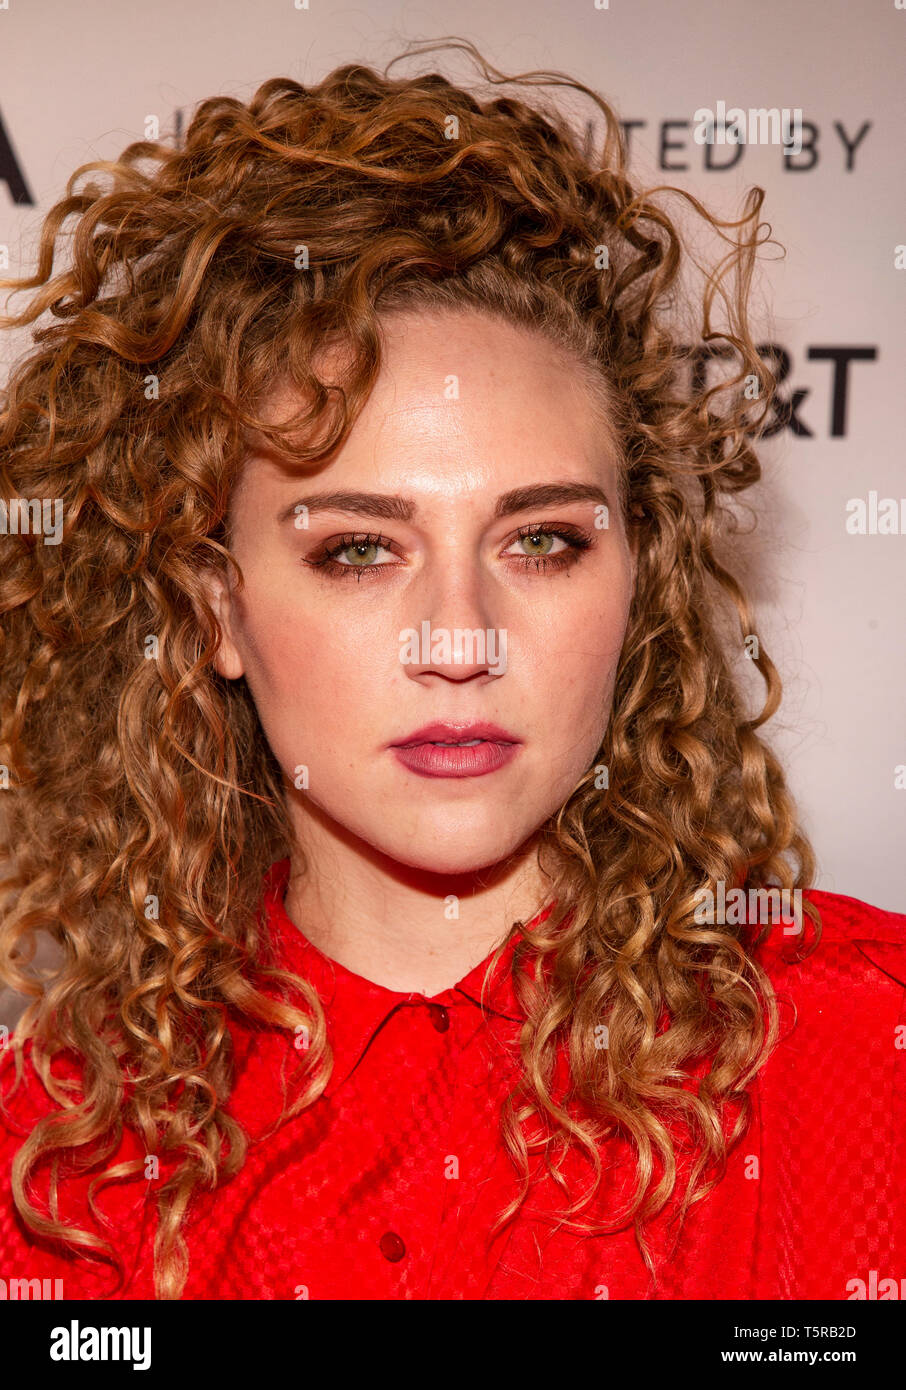 """New York, NY - April 25, 2019: Kat Cunning attends the """"Mystify: Michael Hutchence"""" screenign during the 2019 Tribeca Film Festival at SVA Theater - Stock Image"""